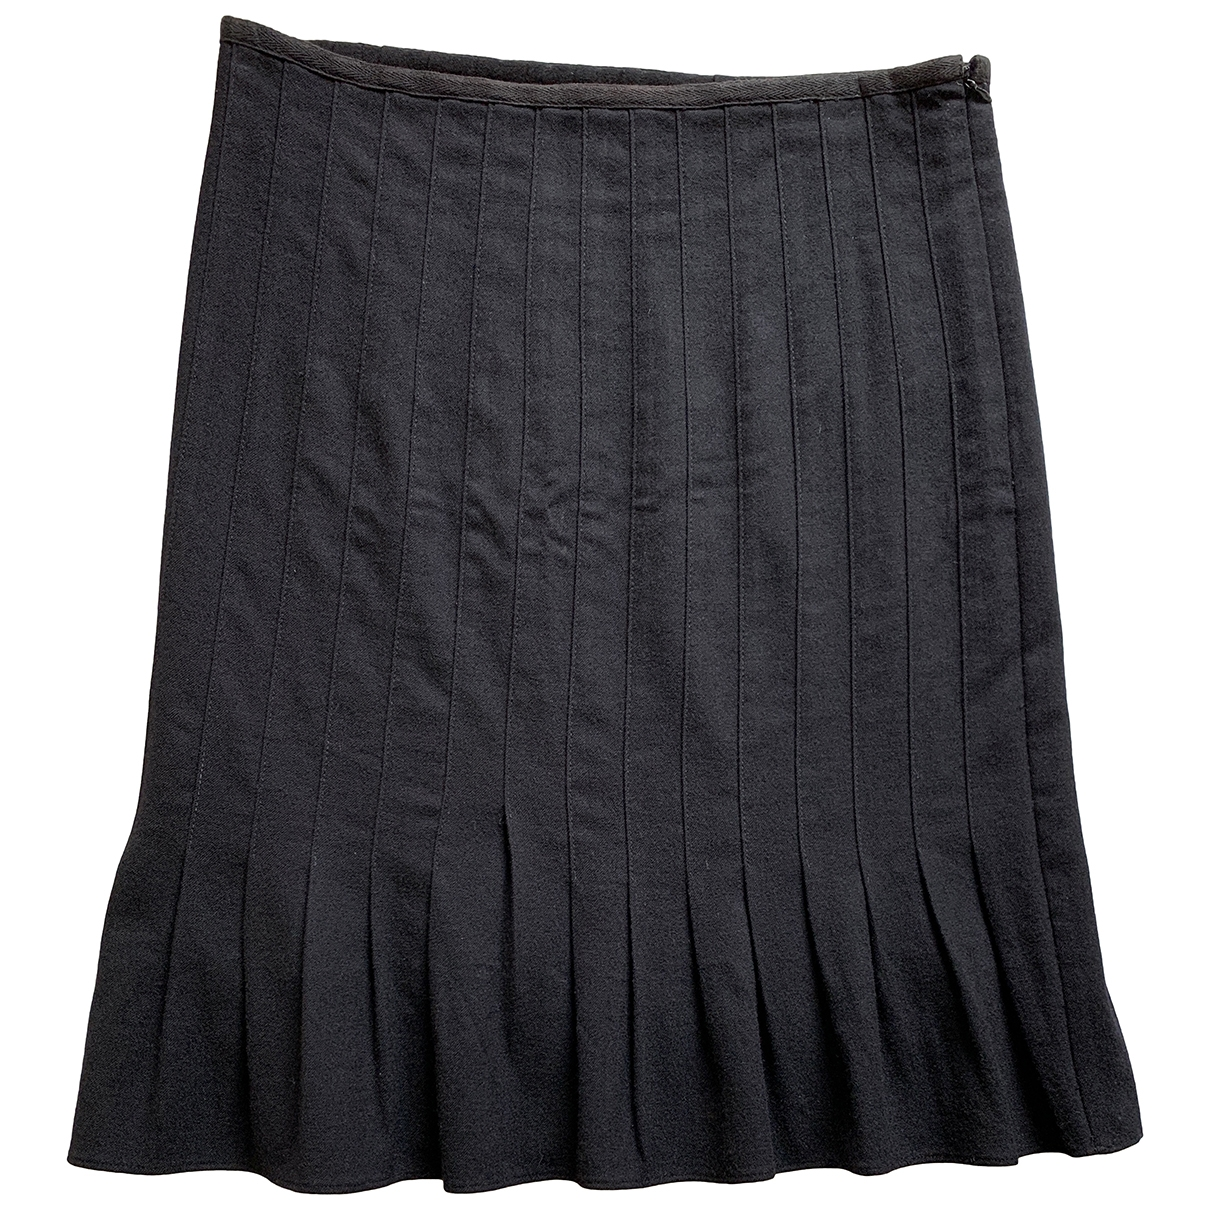 Catherine Malandrino \N Black Wool skirt for Women 8 US